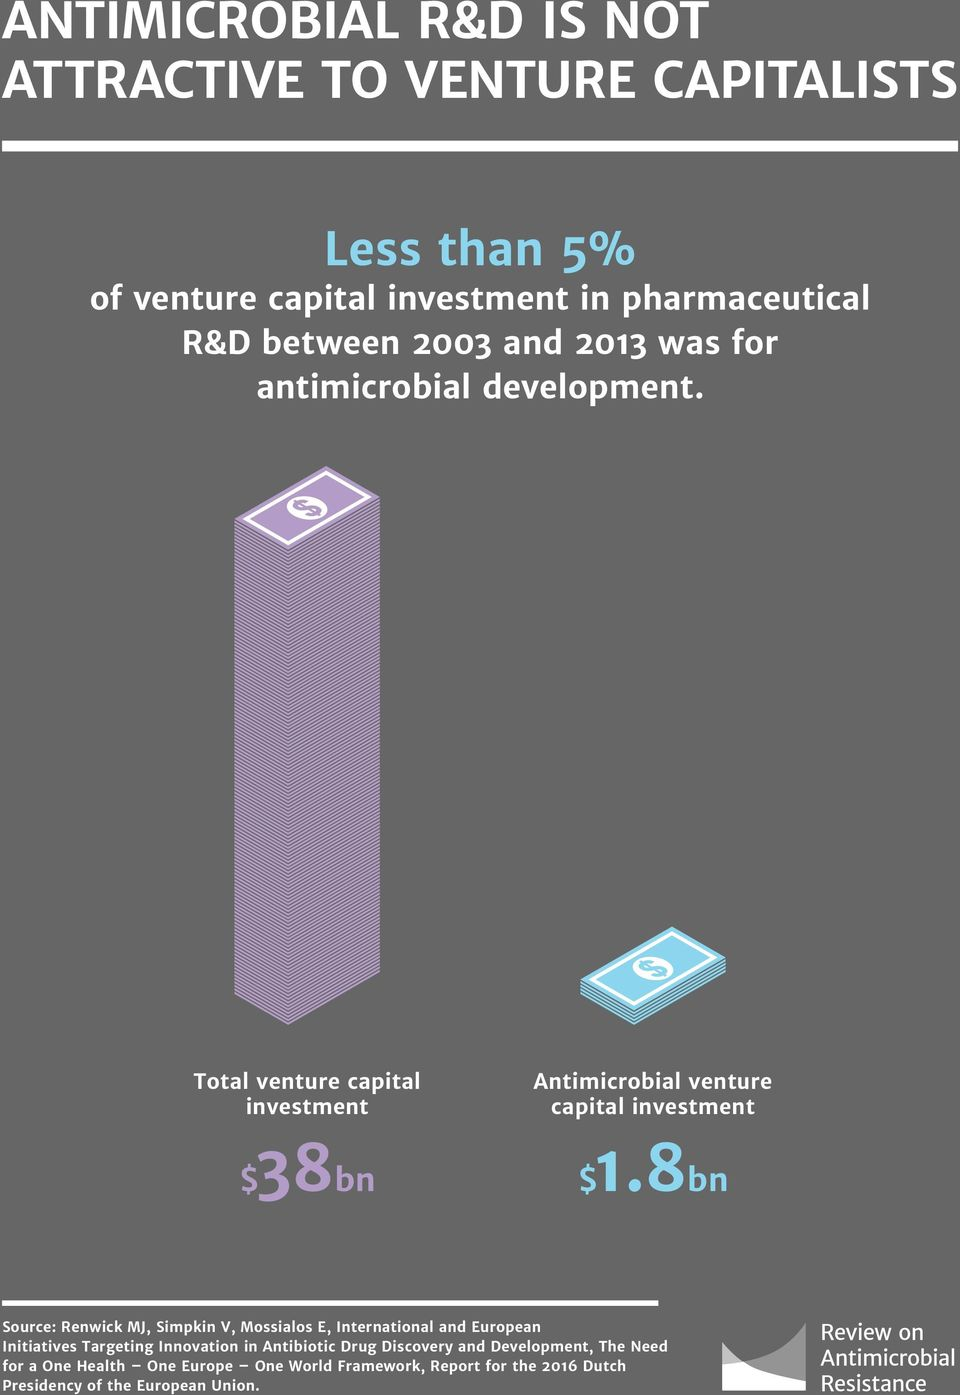 8bn Source: Renwick MJ, Simpkin V, Mossialos E, International and European Initiatives Targeting Innovation in Antibiotic Drug